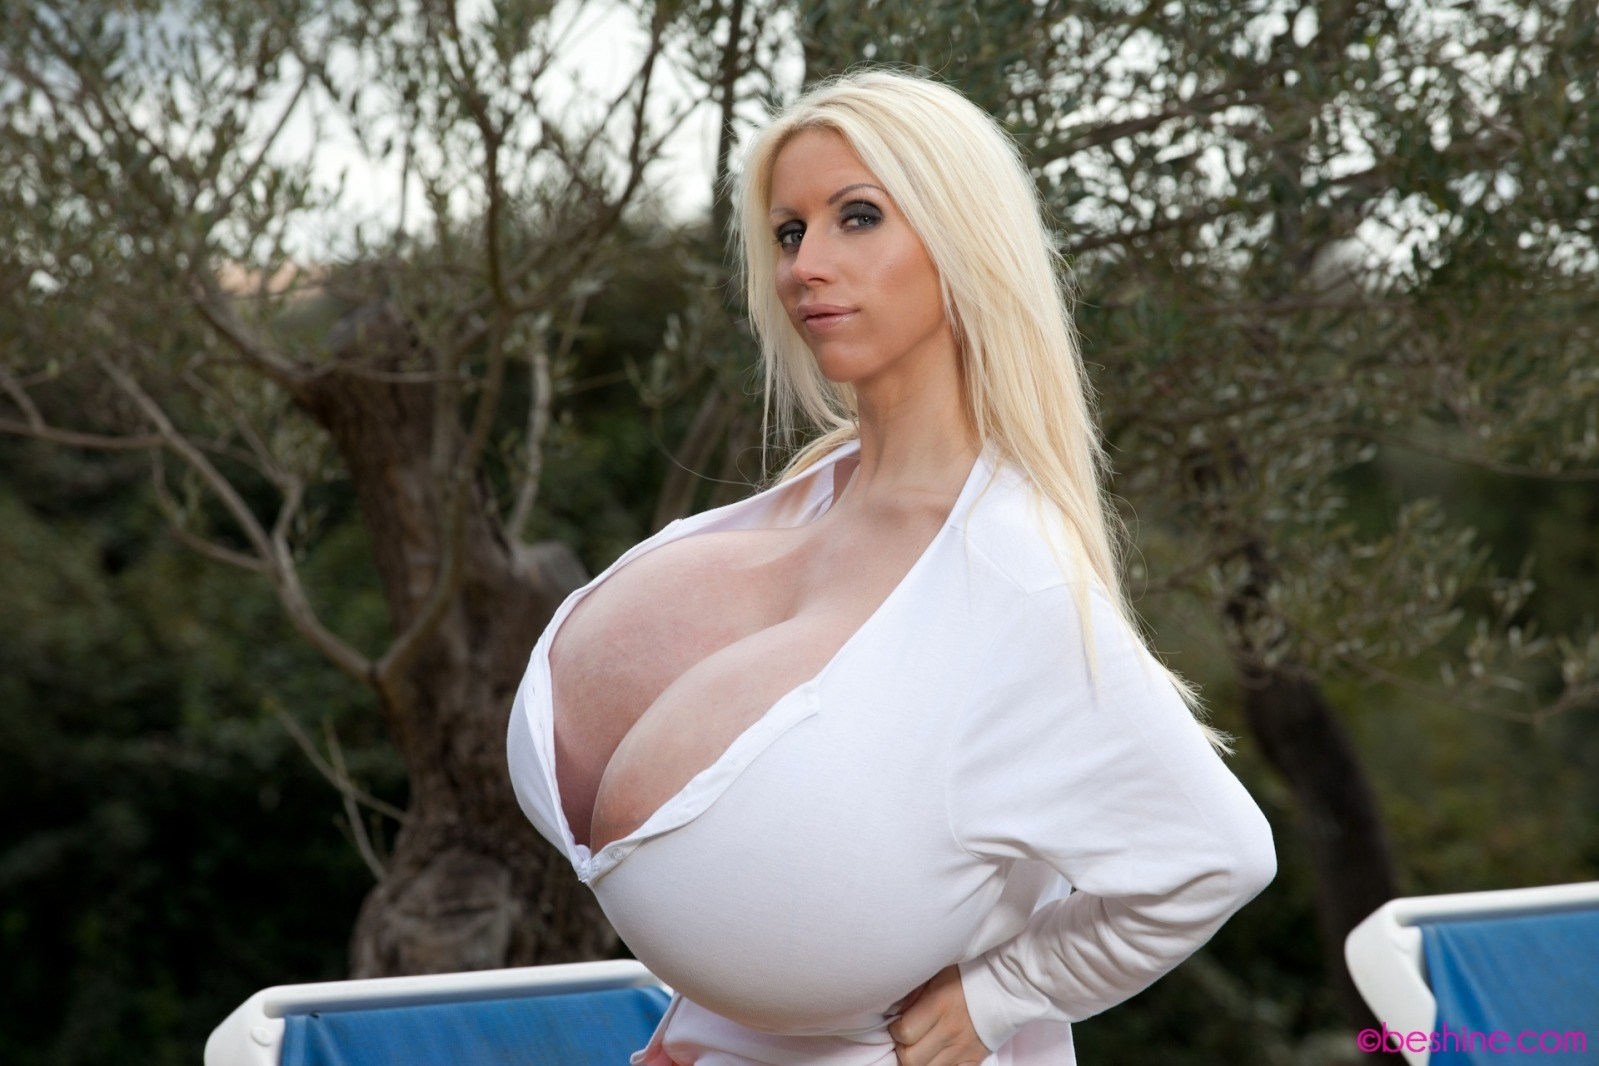 Biggest boobs in the world naked galleries 52